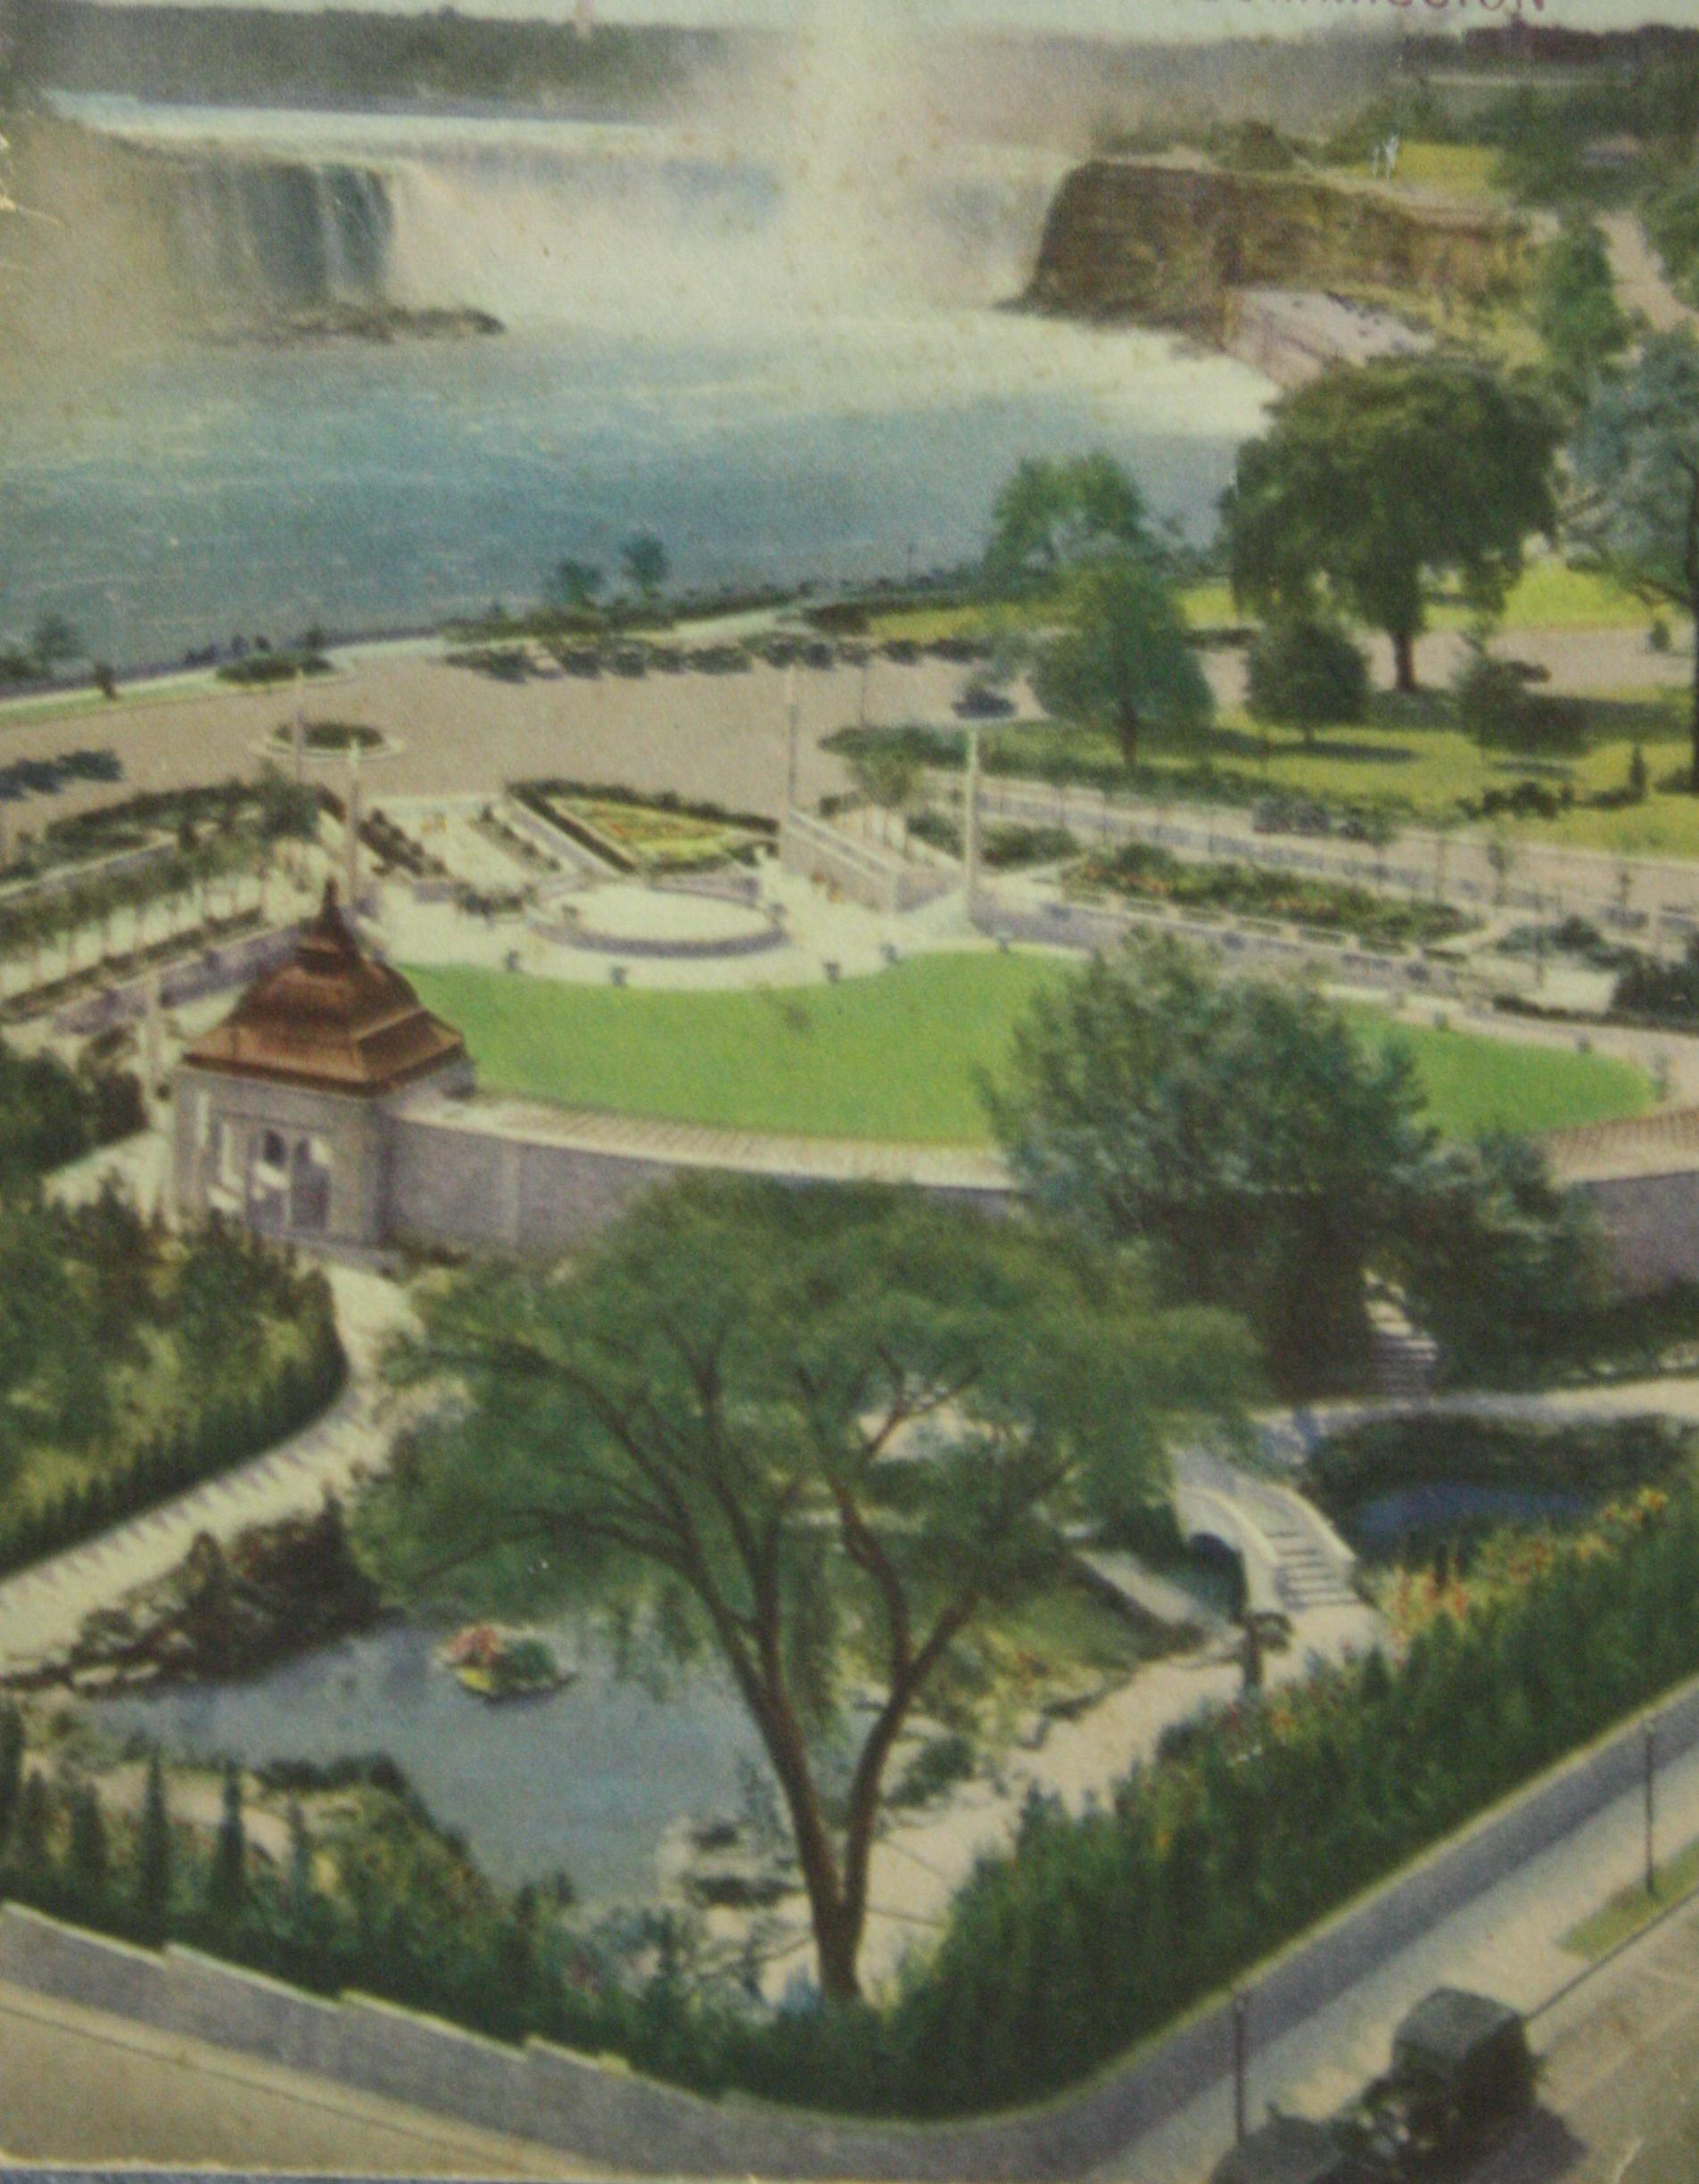 Photograph of the Oakes Garden Theatre. Starting in the background, there is the Horseshoe Falls with blue water flowing over and mist rising. The Niagara Parkway, road, is in the mid-ground with the intersection at the bottom of Clifton Hill and several trees. Well-cultivated gardens flow to this intersection from the Theatre side, also a large lawn framed by concrete stairways, walkway and a wall separating the theatre area from the reflection natural area just behind the wall. Falls Avenue is in the extreme foreground with a couple of black cars and telephone or light poles.